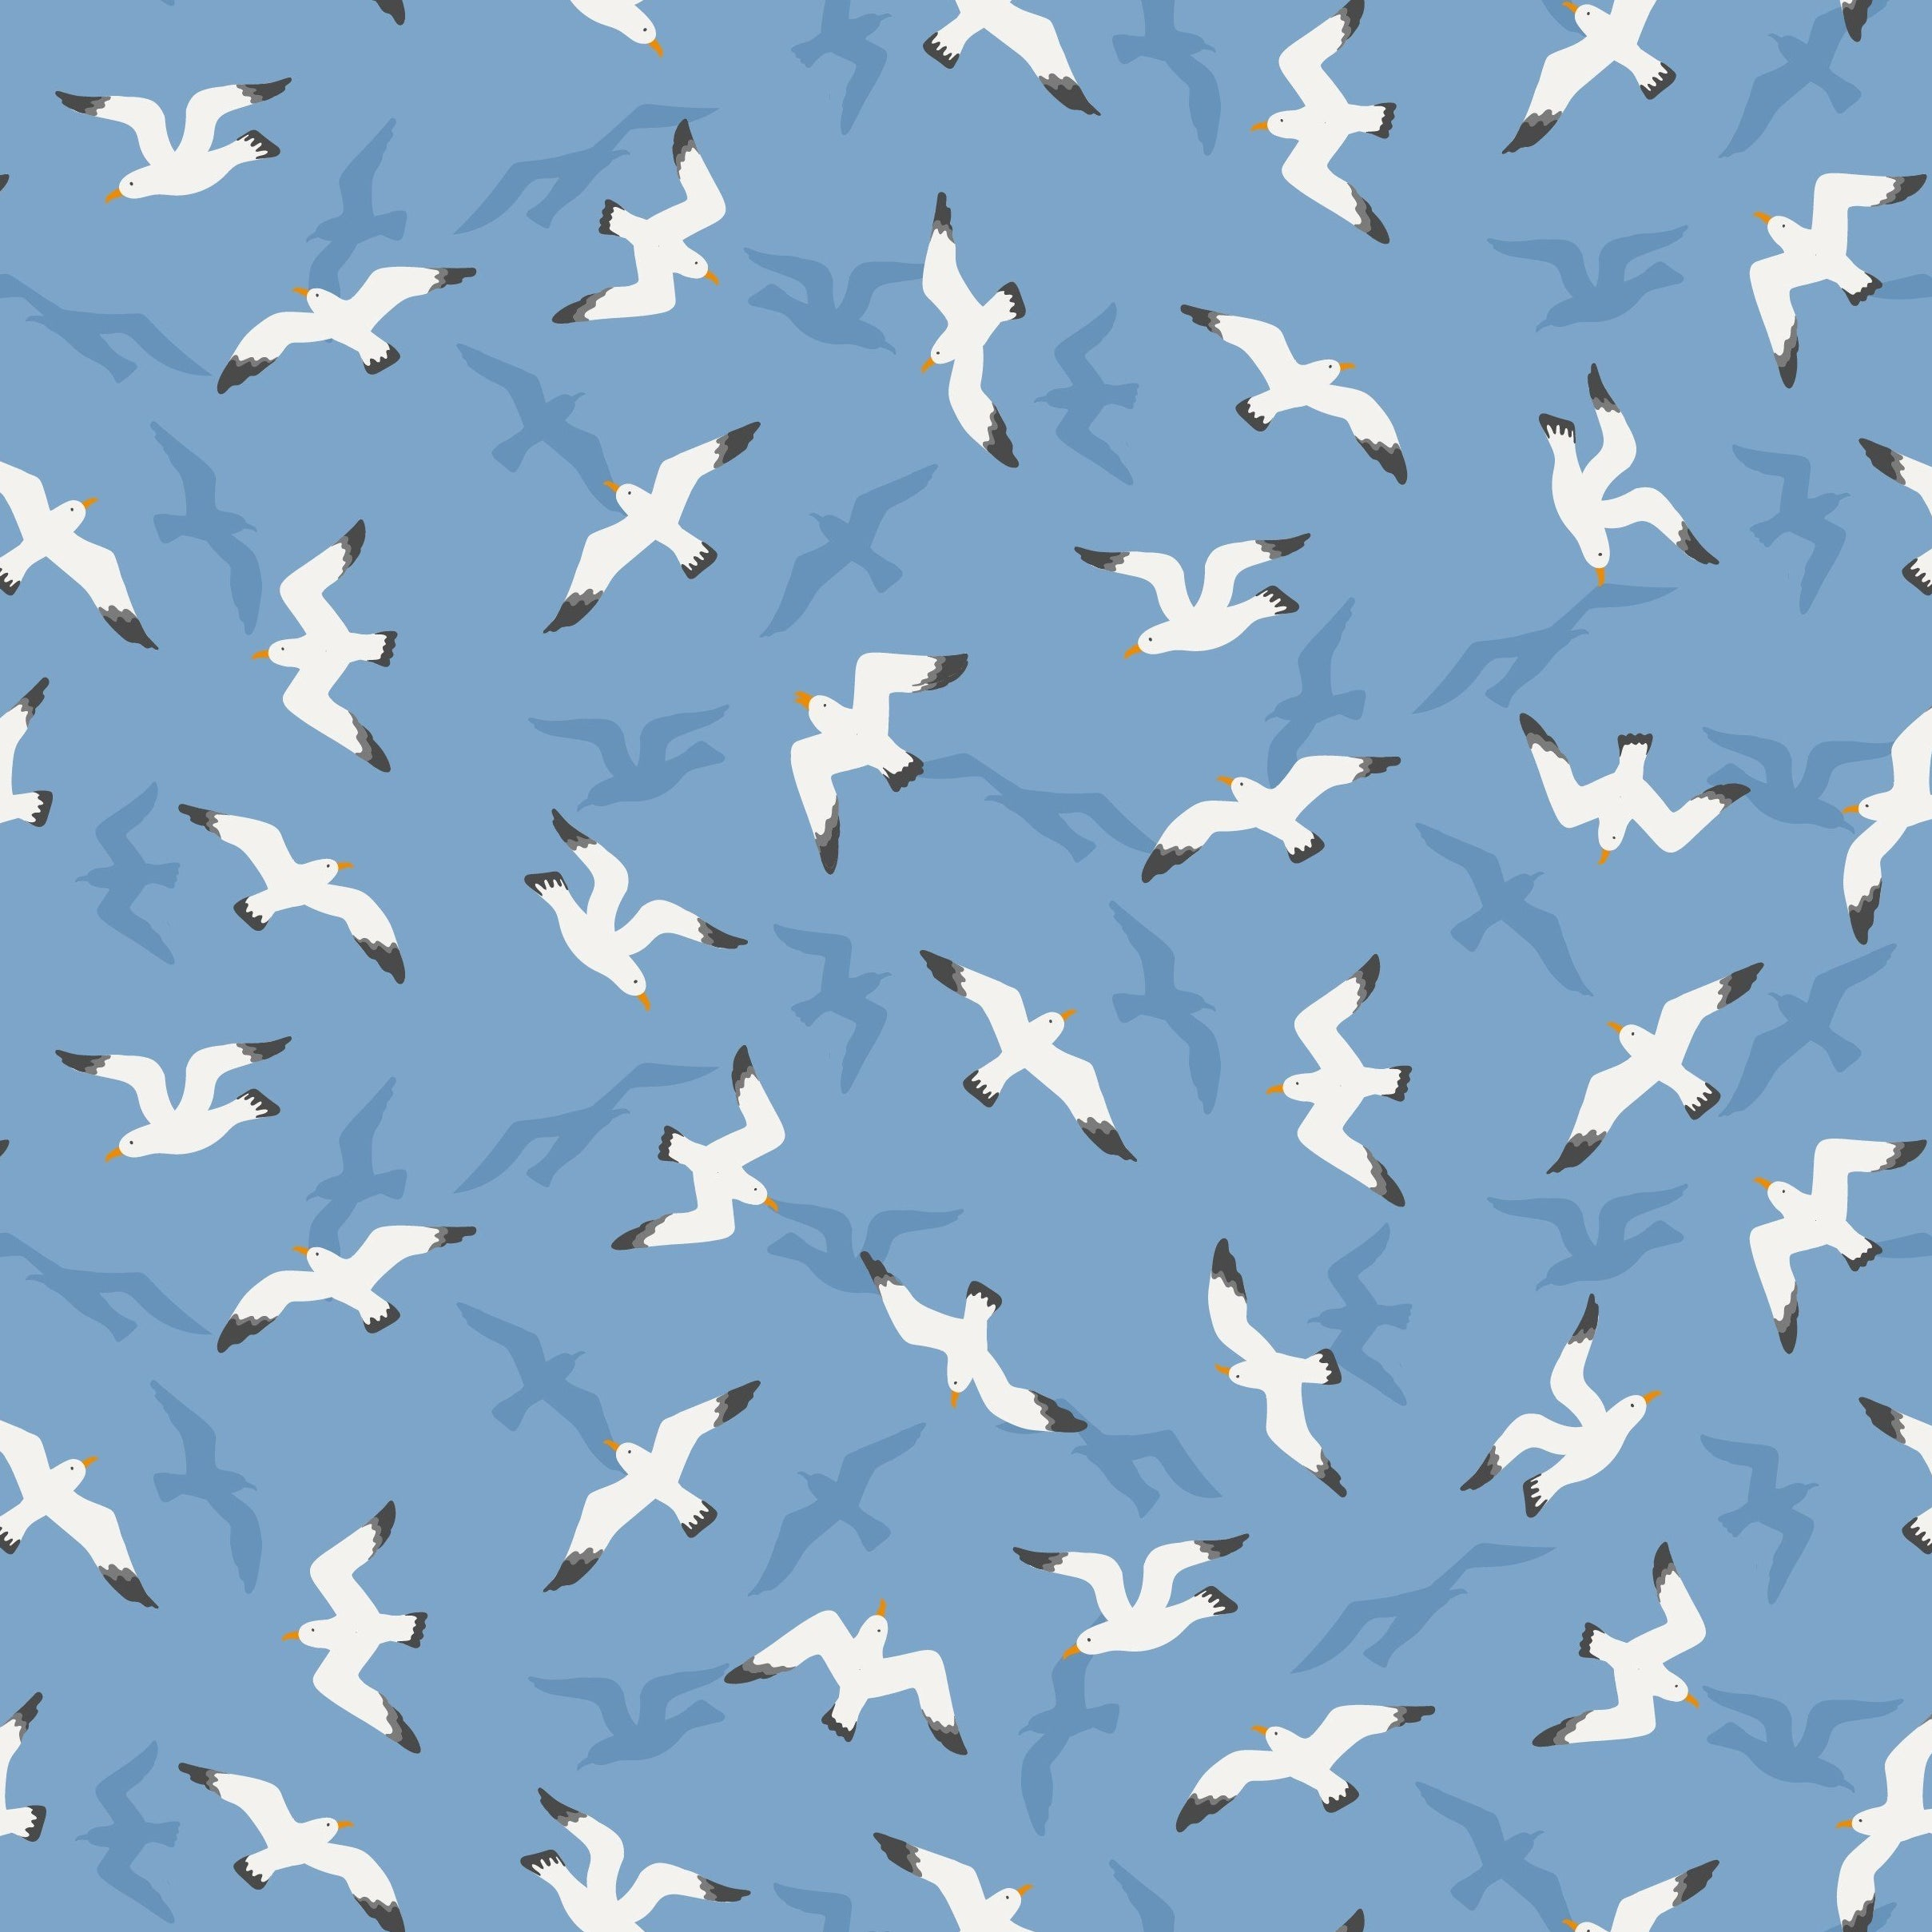 From Old Harry Rocks - Swanage Seagulls Fabric - Trapunto